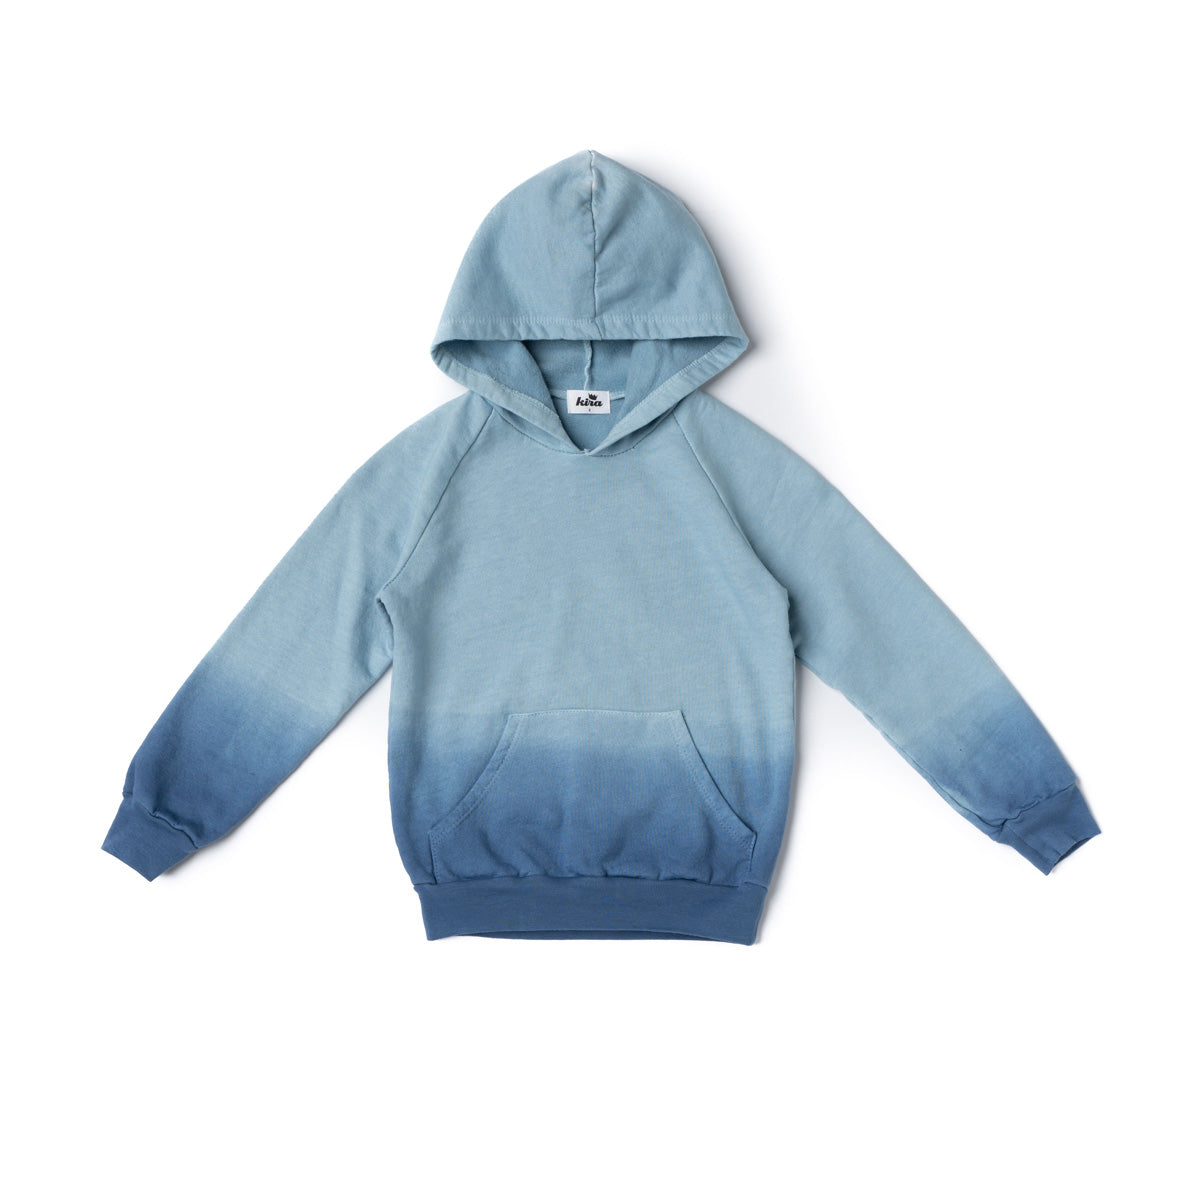 Blue Ombre Tie Dye Hoodie with Pockets